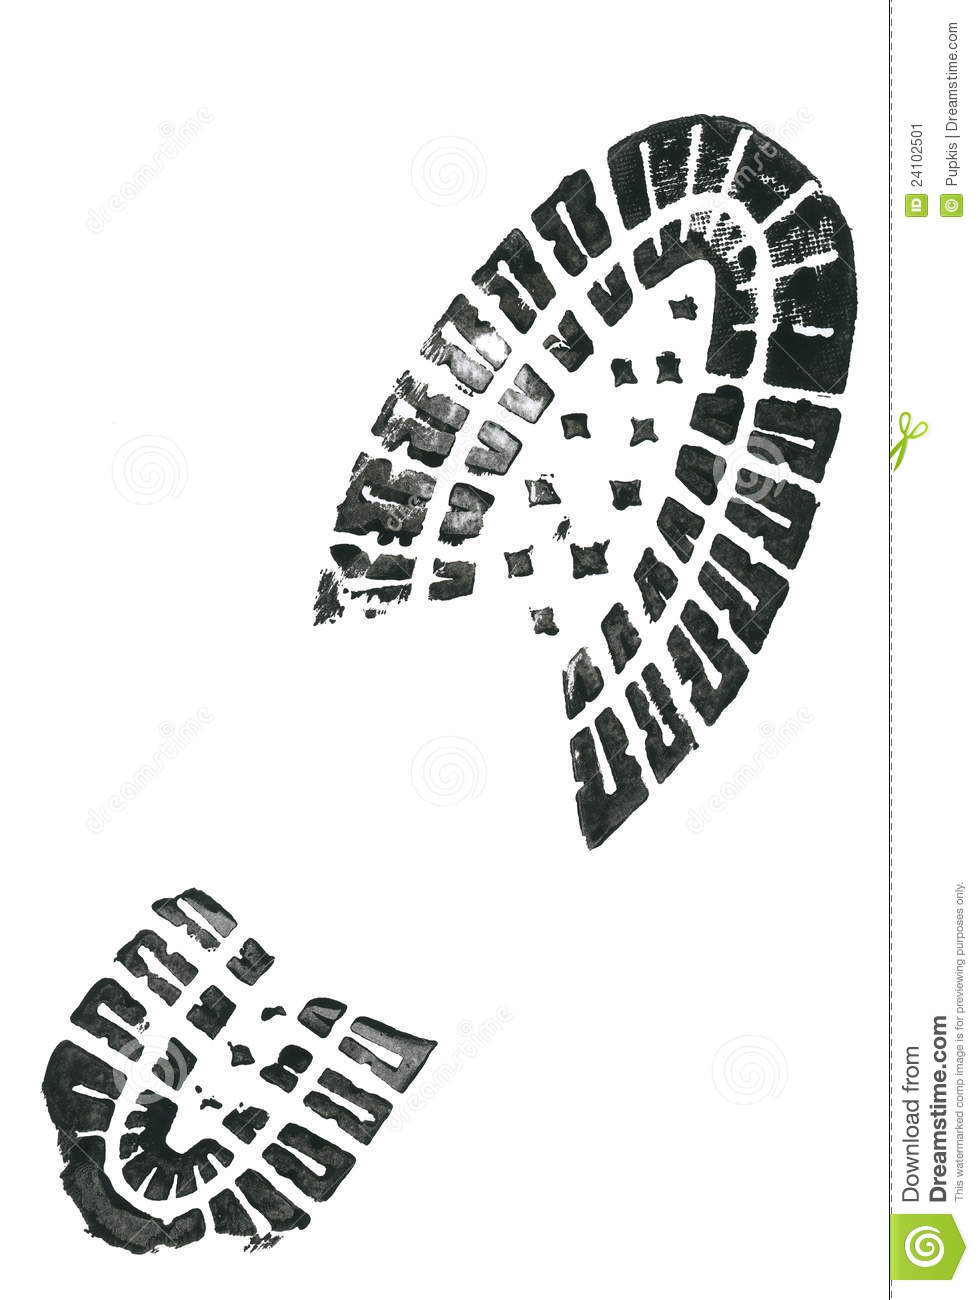 Foot Print And Shoe Print Royalty-Free Stock Image